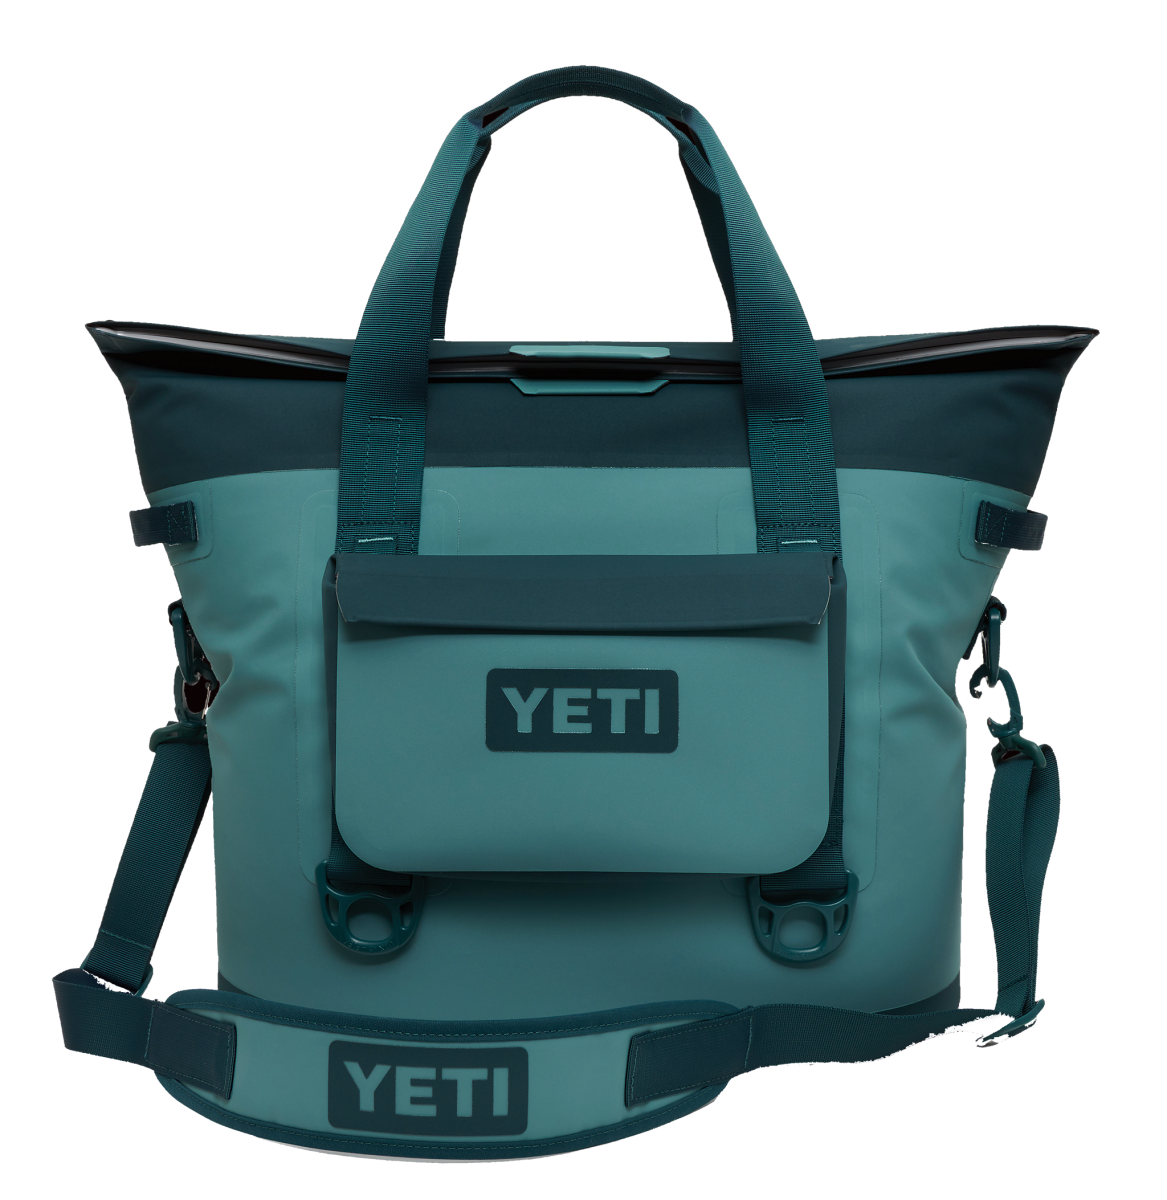 08-YETI_20190611_Product_M30_River-Green_Front_with-Sidekick-Dry_Handles-Up